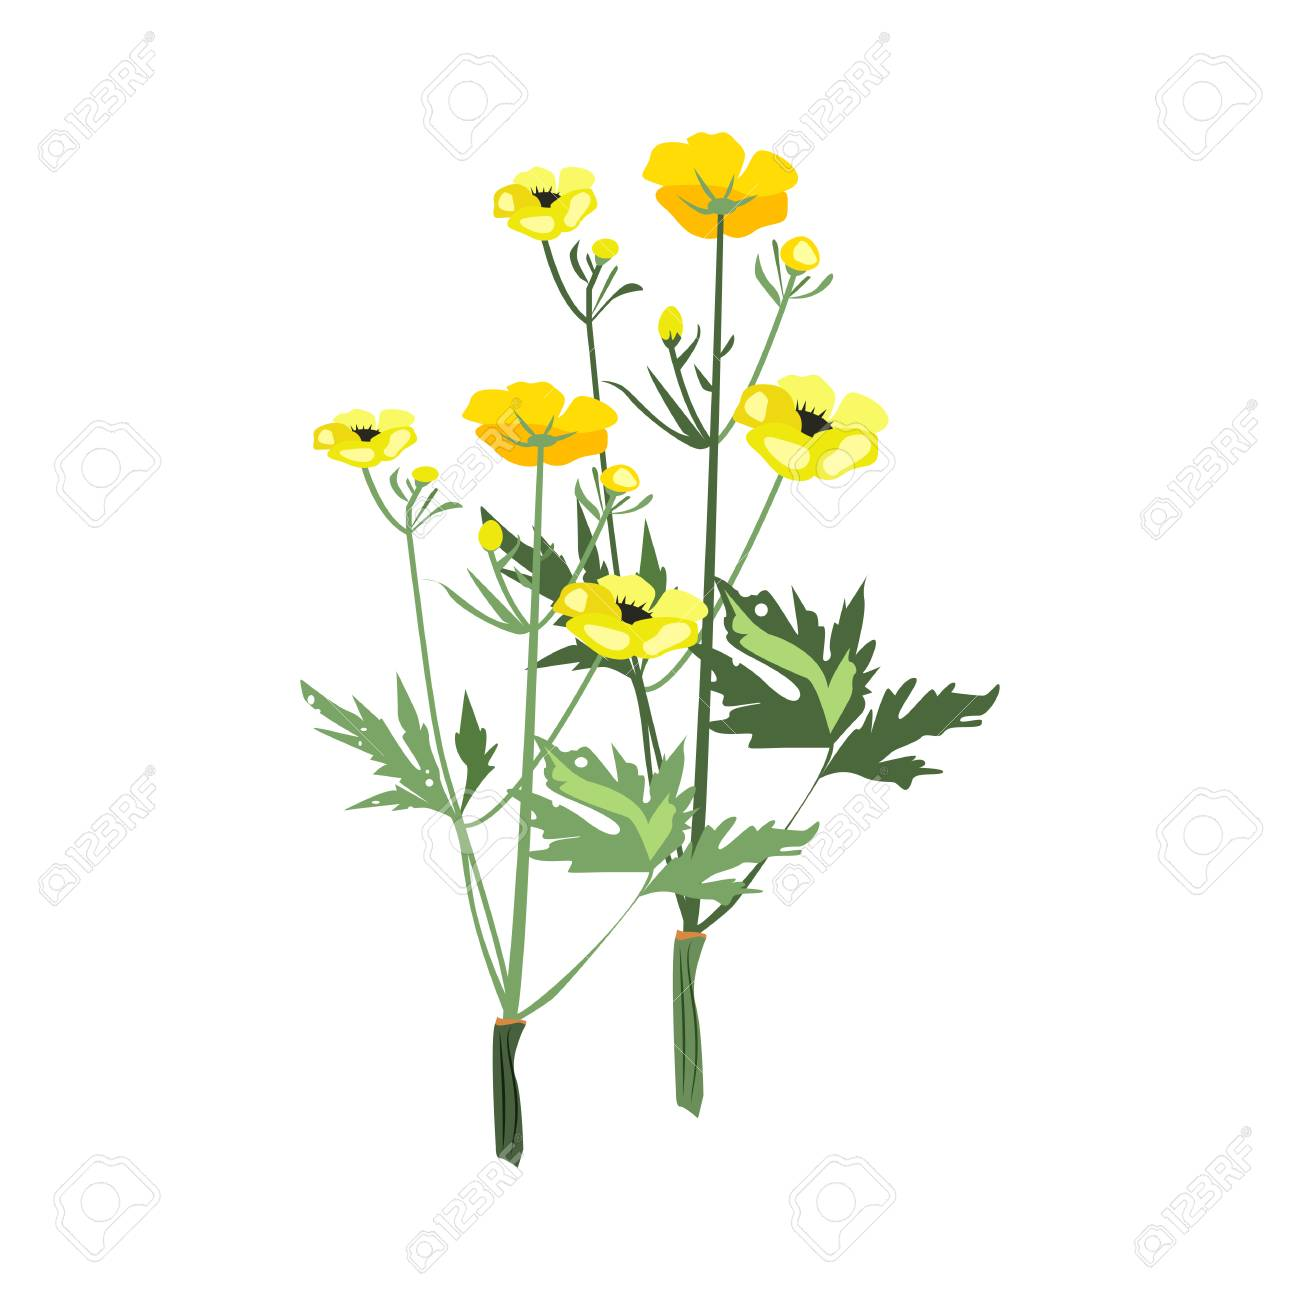 0f294b81bd150 Vector - Yellow flowers illustration. Flower, plant, nature. Spring  concept. Vector illustration can be used for topics like garden, field  flowers, nature